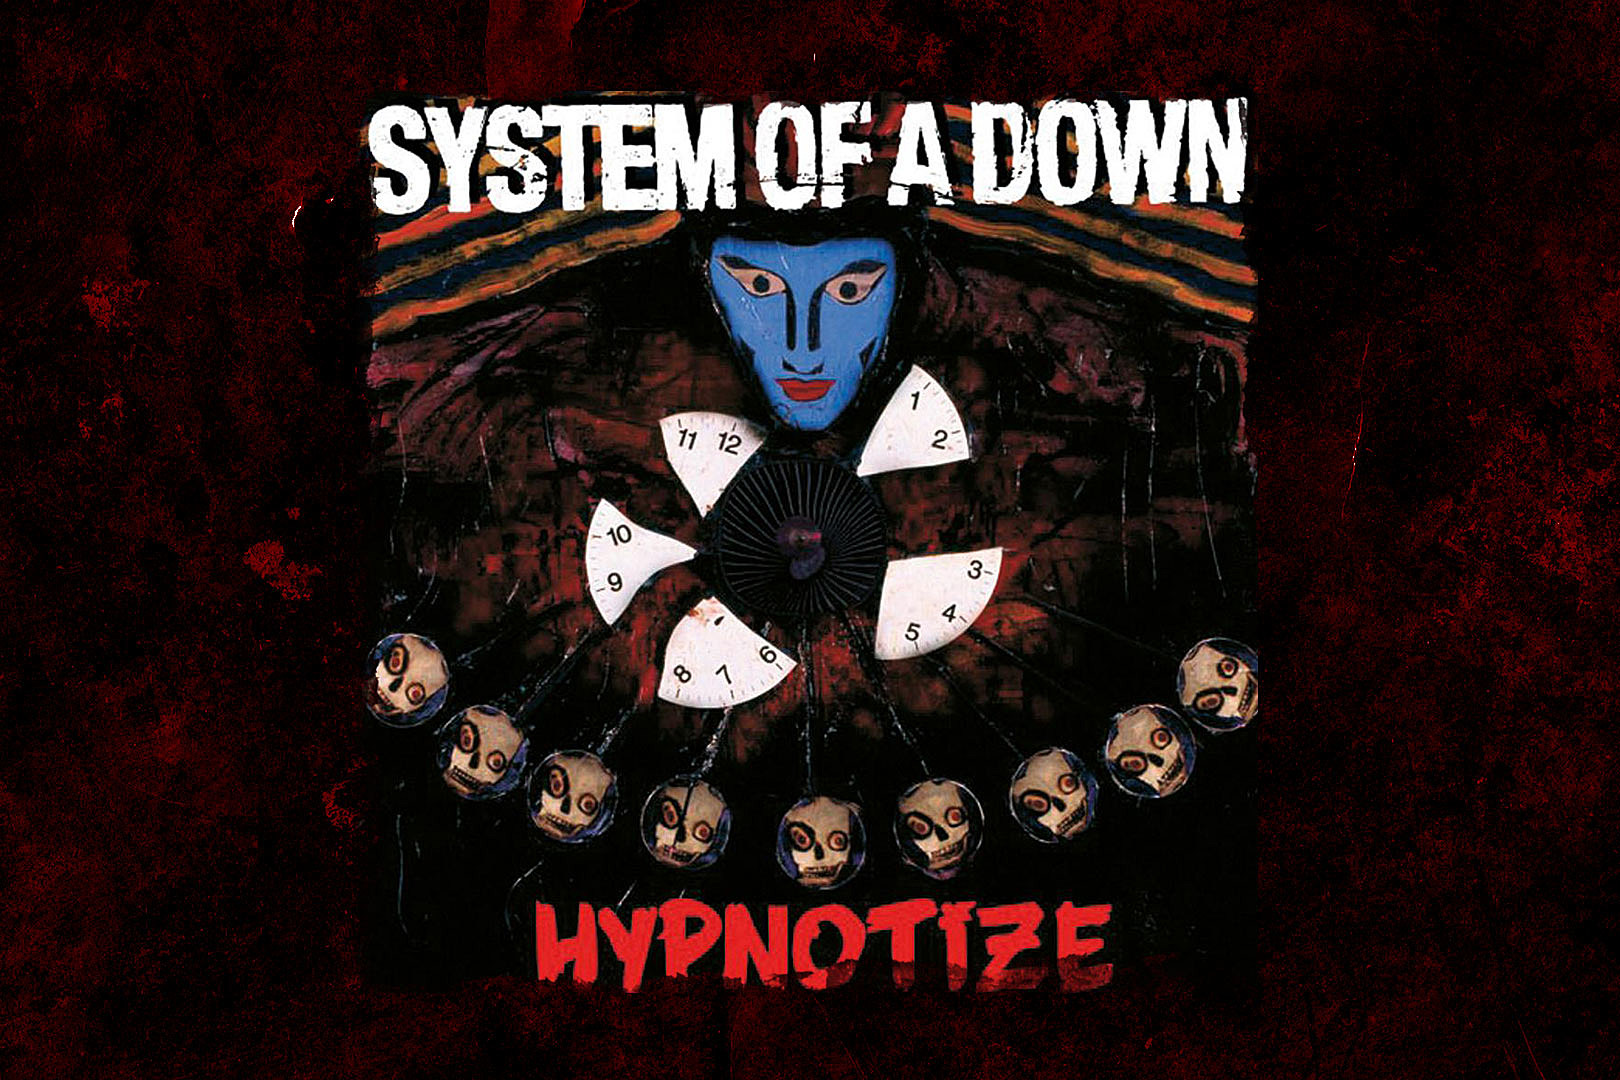 14 Years Ago: System of a Down Release 'Hypnotize' Album